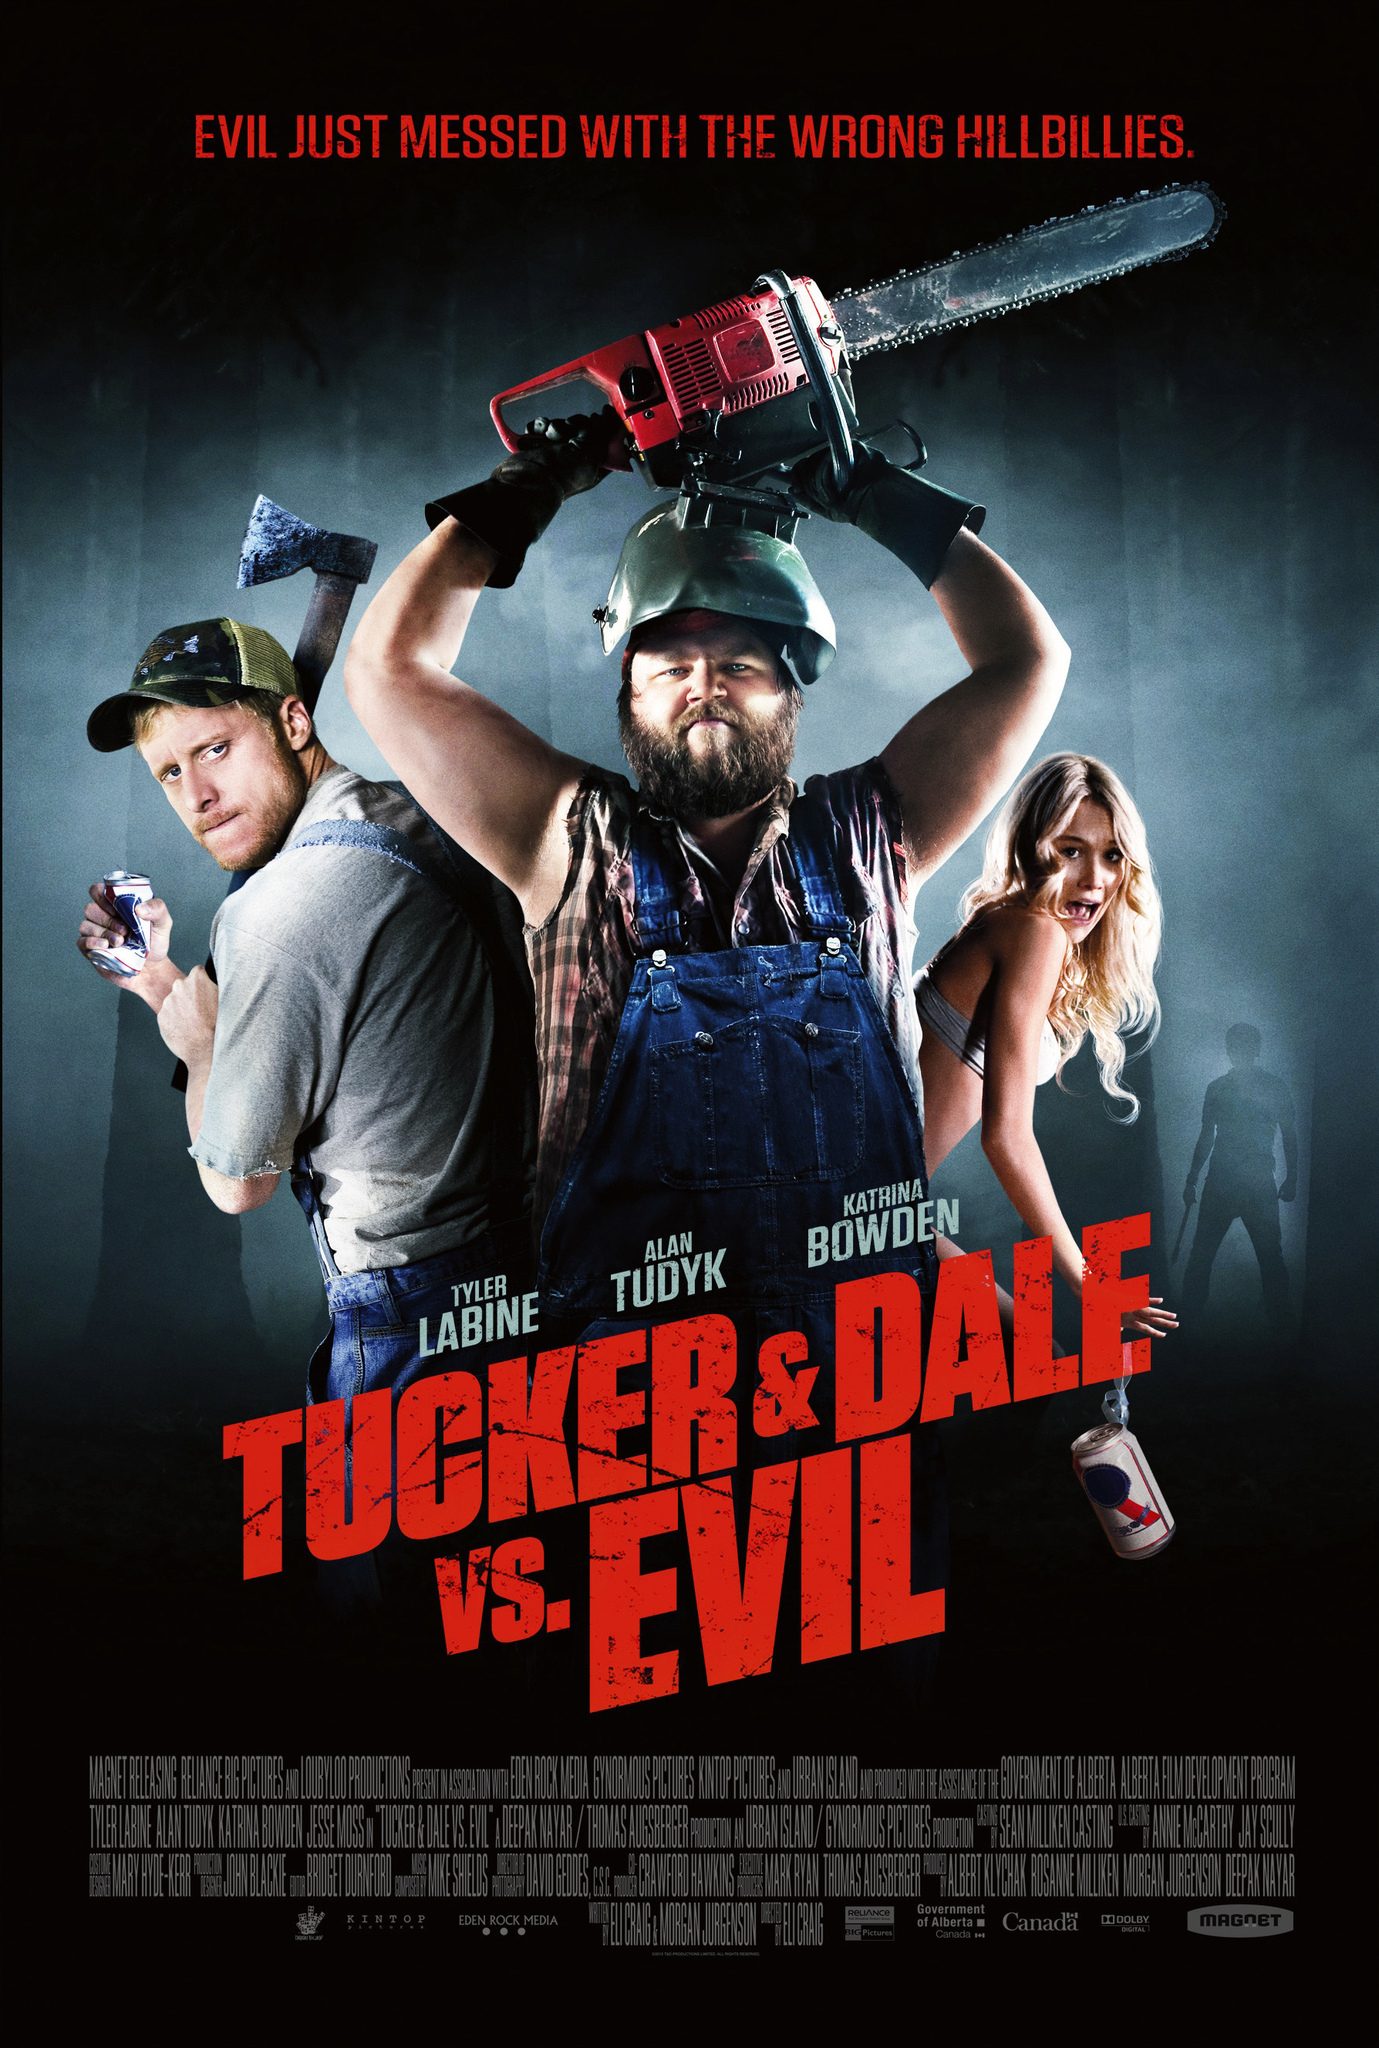 Tucker and dale vs evil torrent